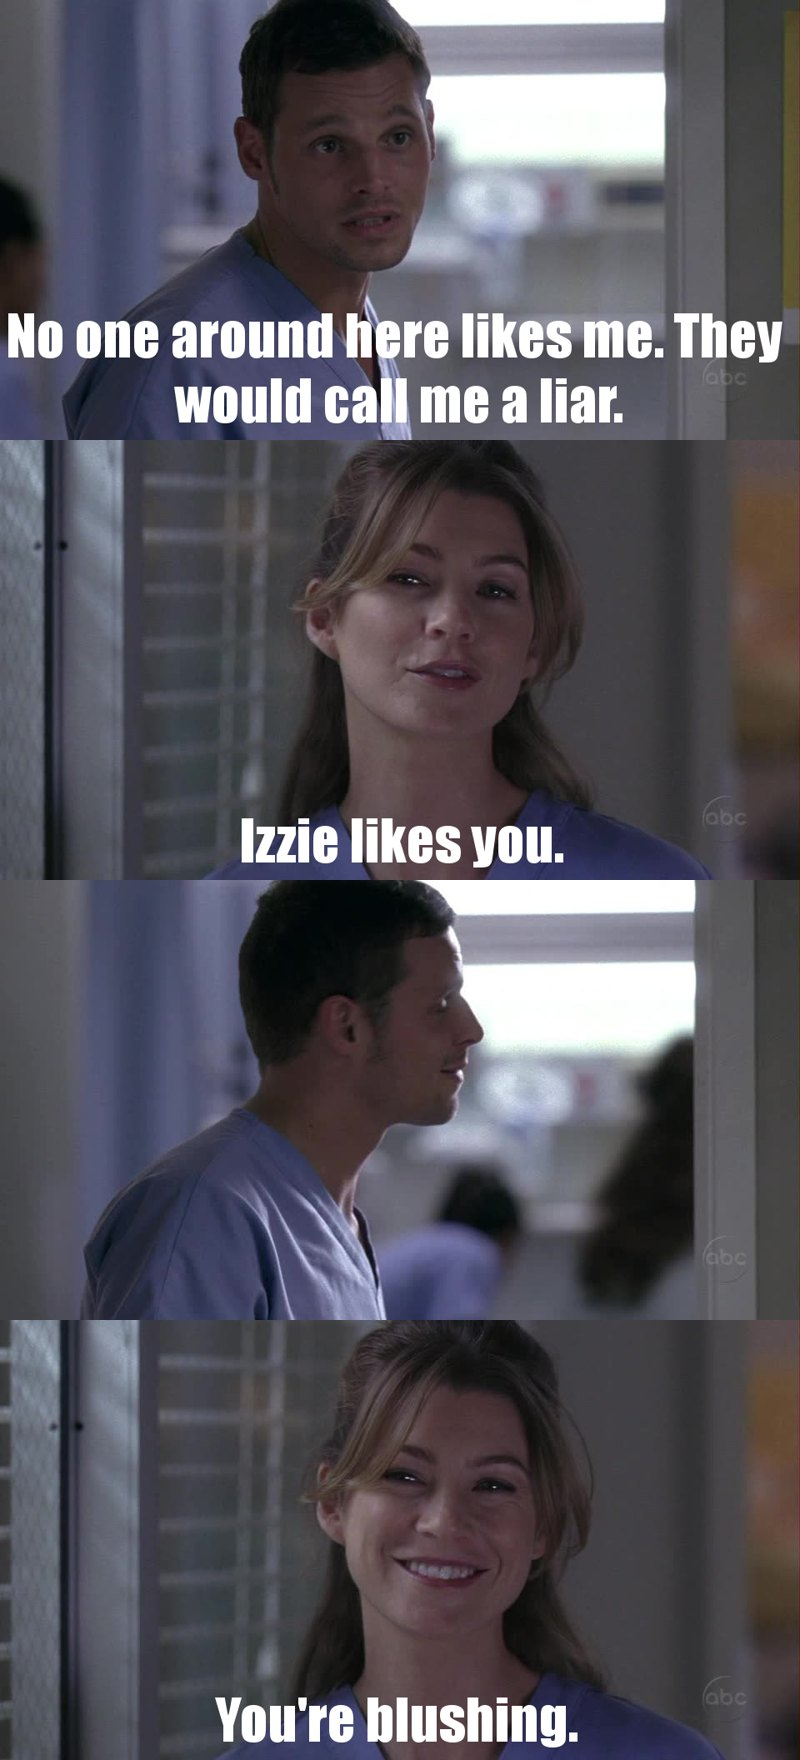 I hated derek in this episode. But alex is not being a jerk all the time. Now I like him more than before <3